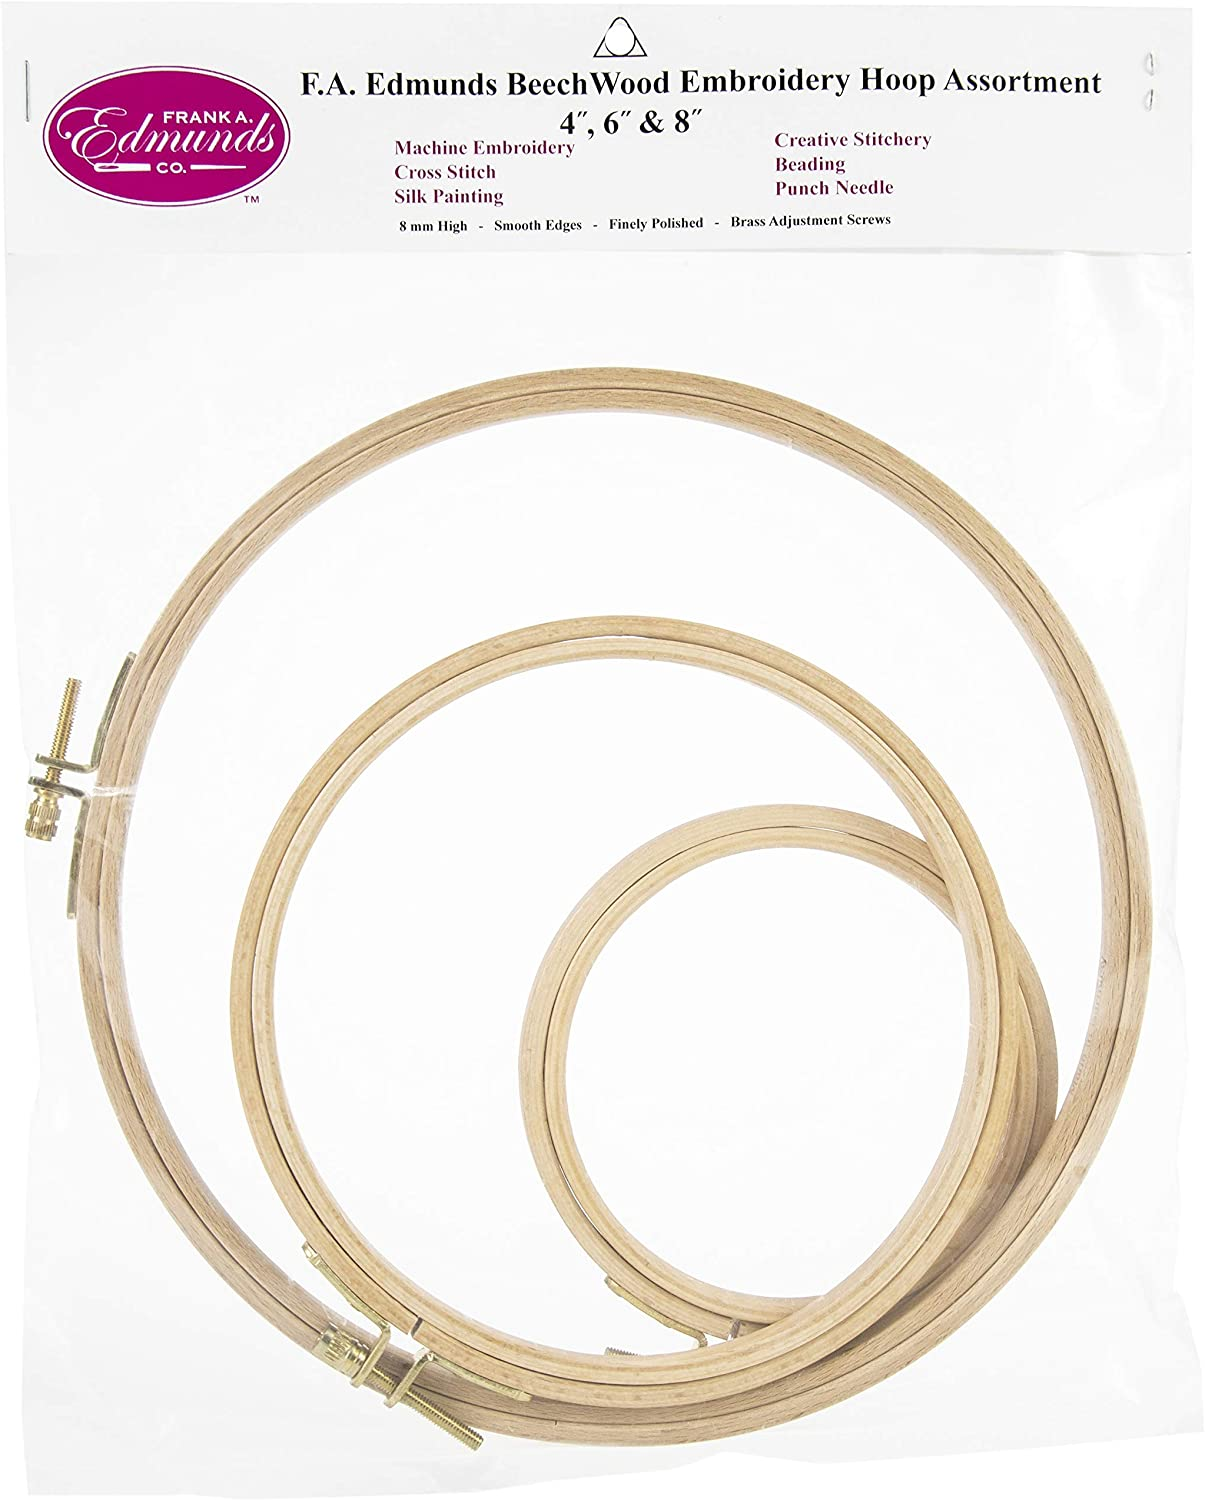 3-Inch Frank Edmunds Polished Beech Wood Embroidery Hoop